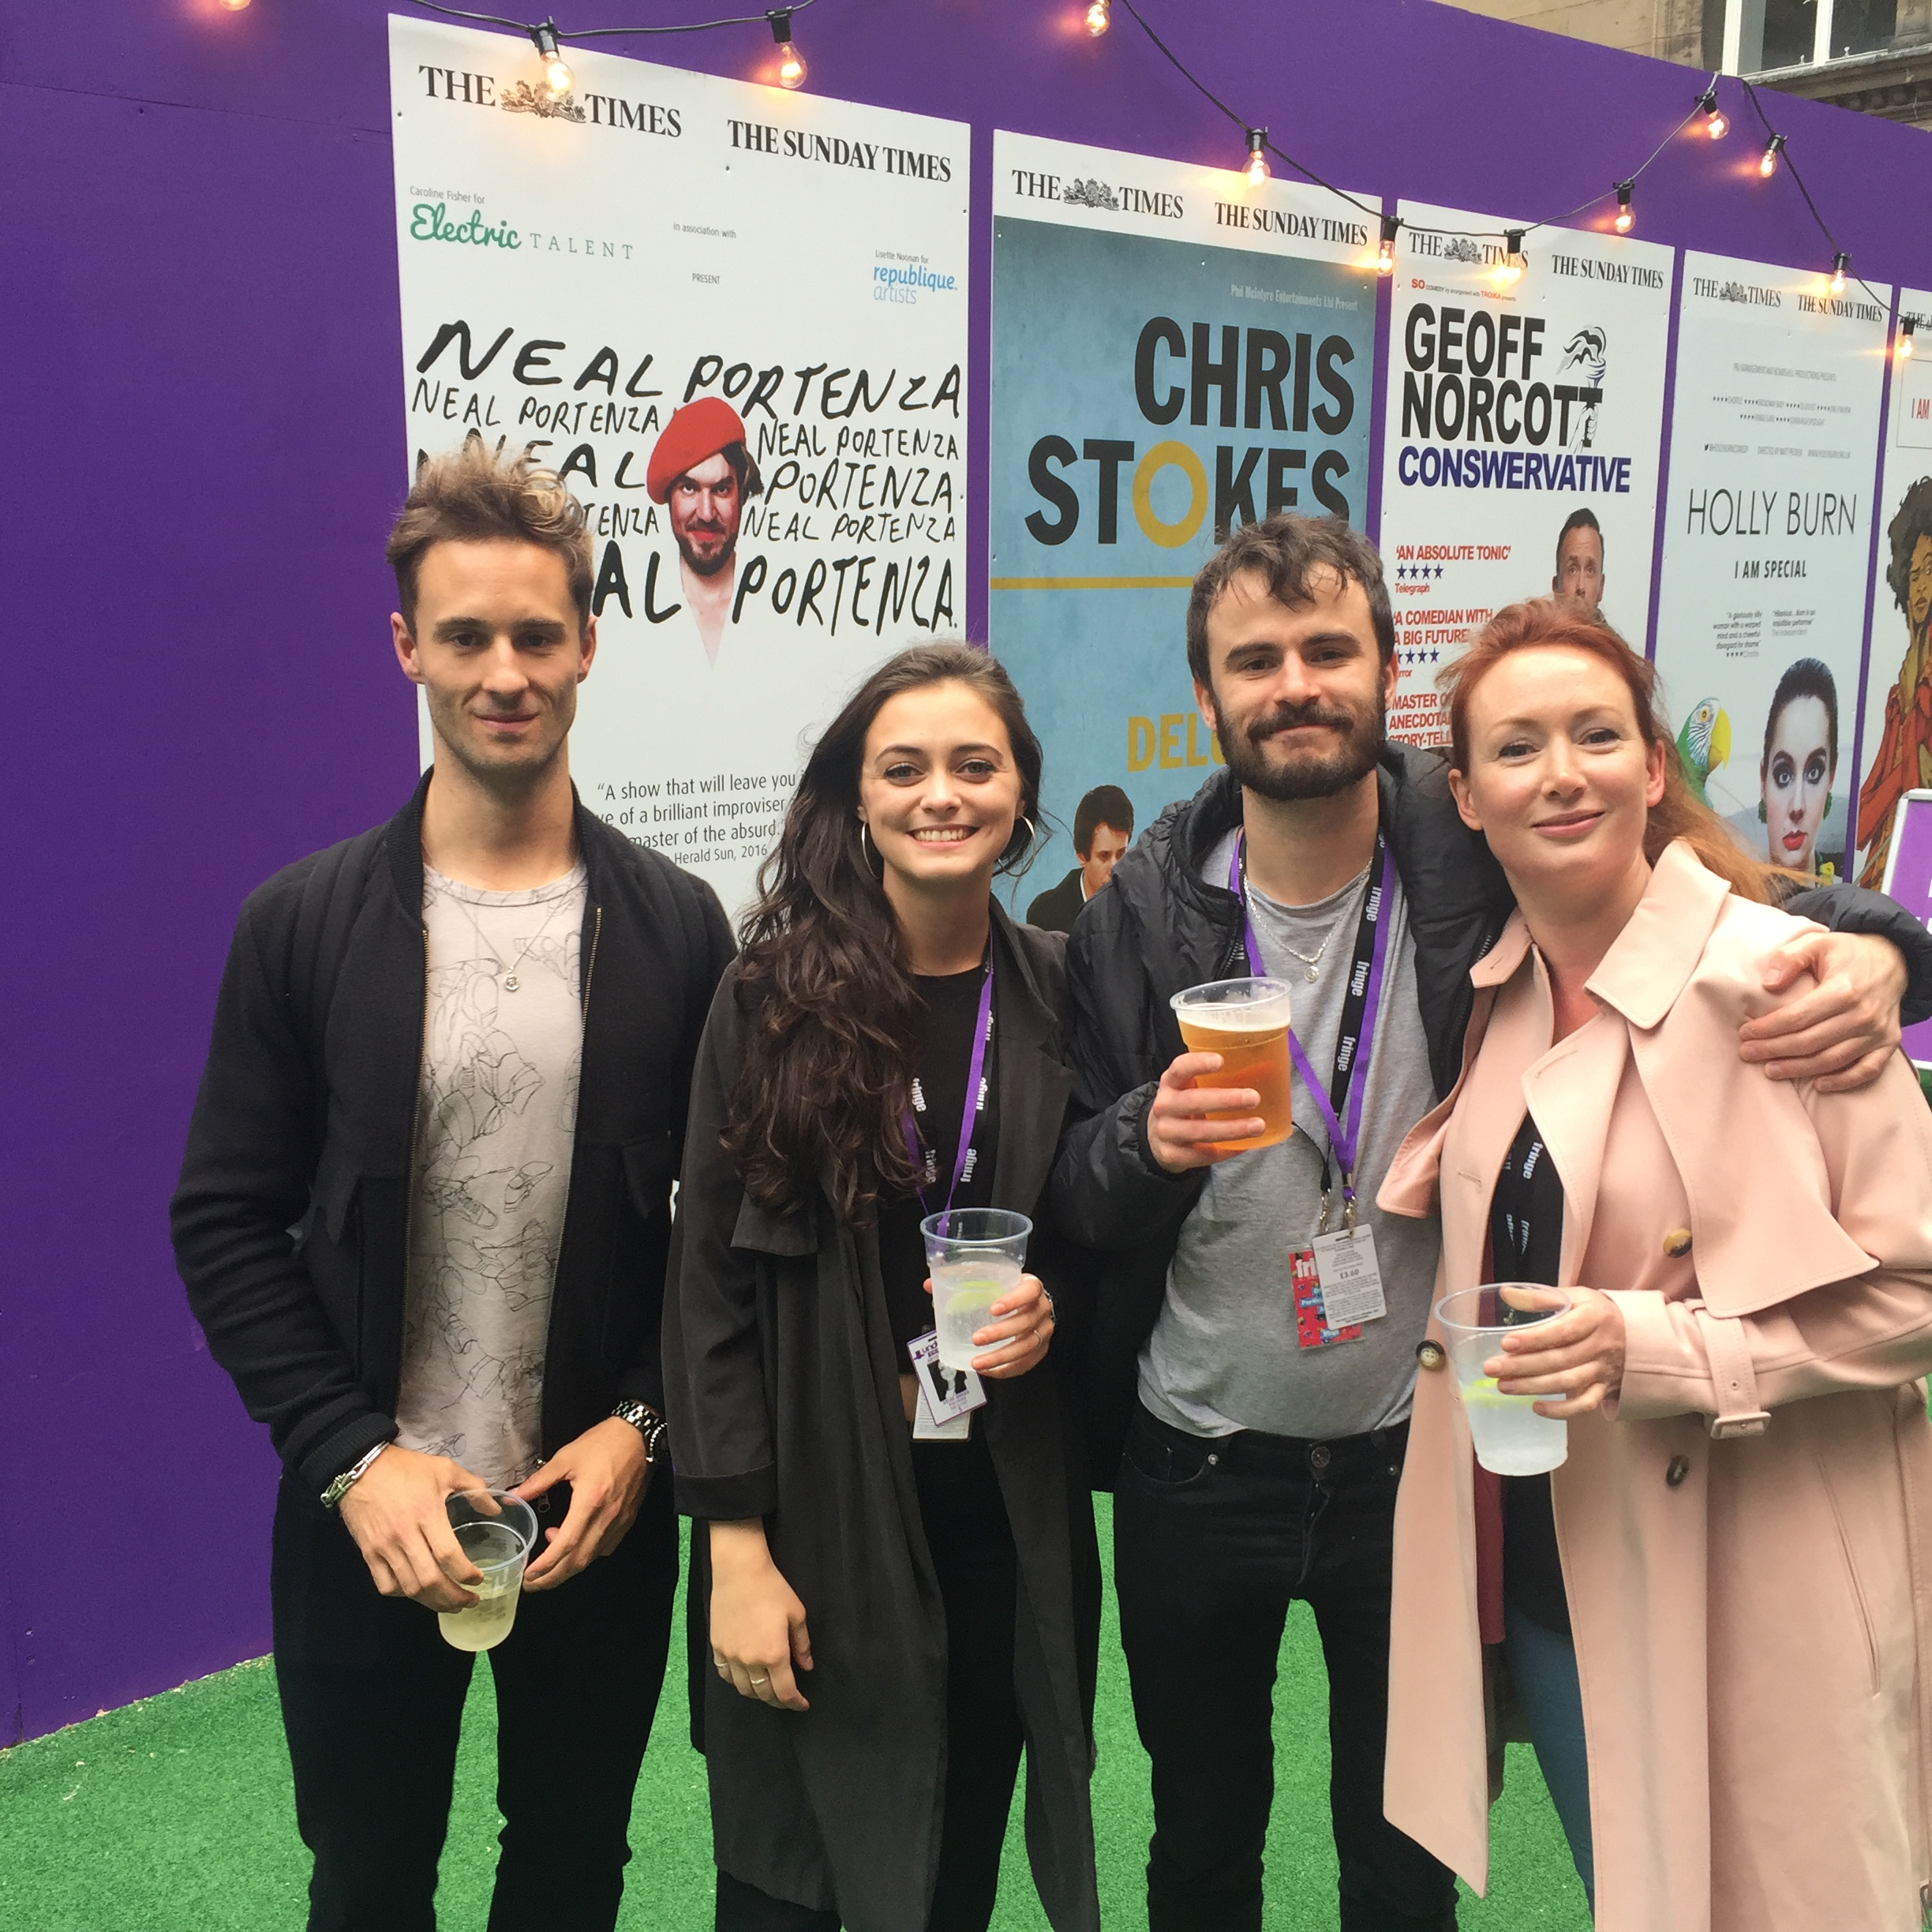 The cast of the d-list at the 2016 edinburgh fringe: samuel curry, syLvie briggs, jonathan mathews and helen rose-hampton.